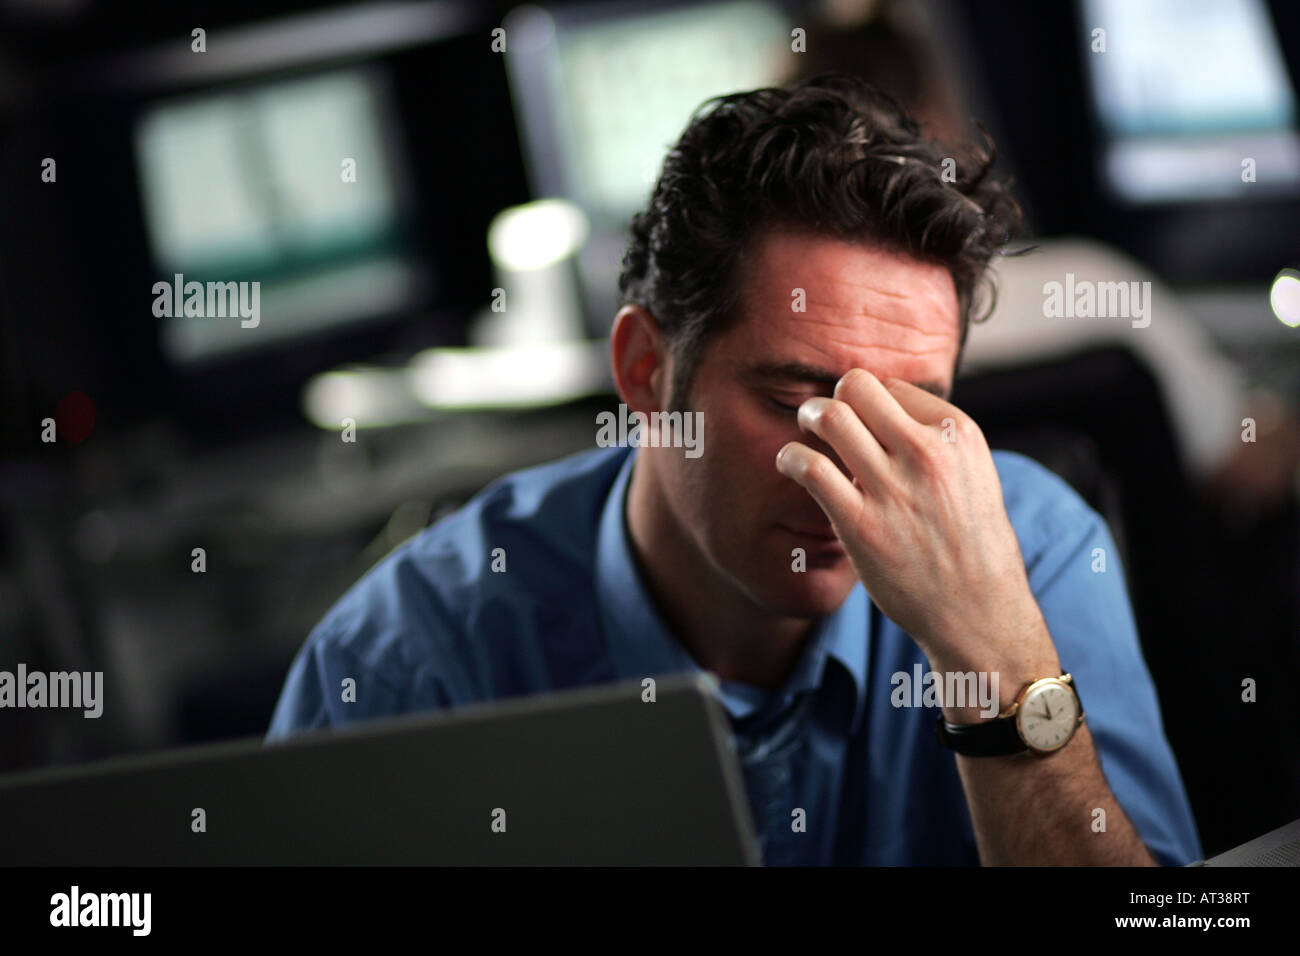 A business man sitting at his desk looking tired - Stock Image